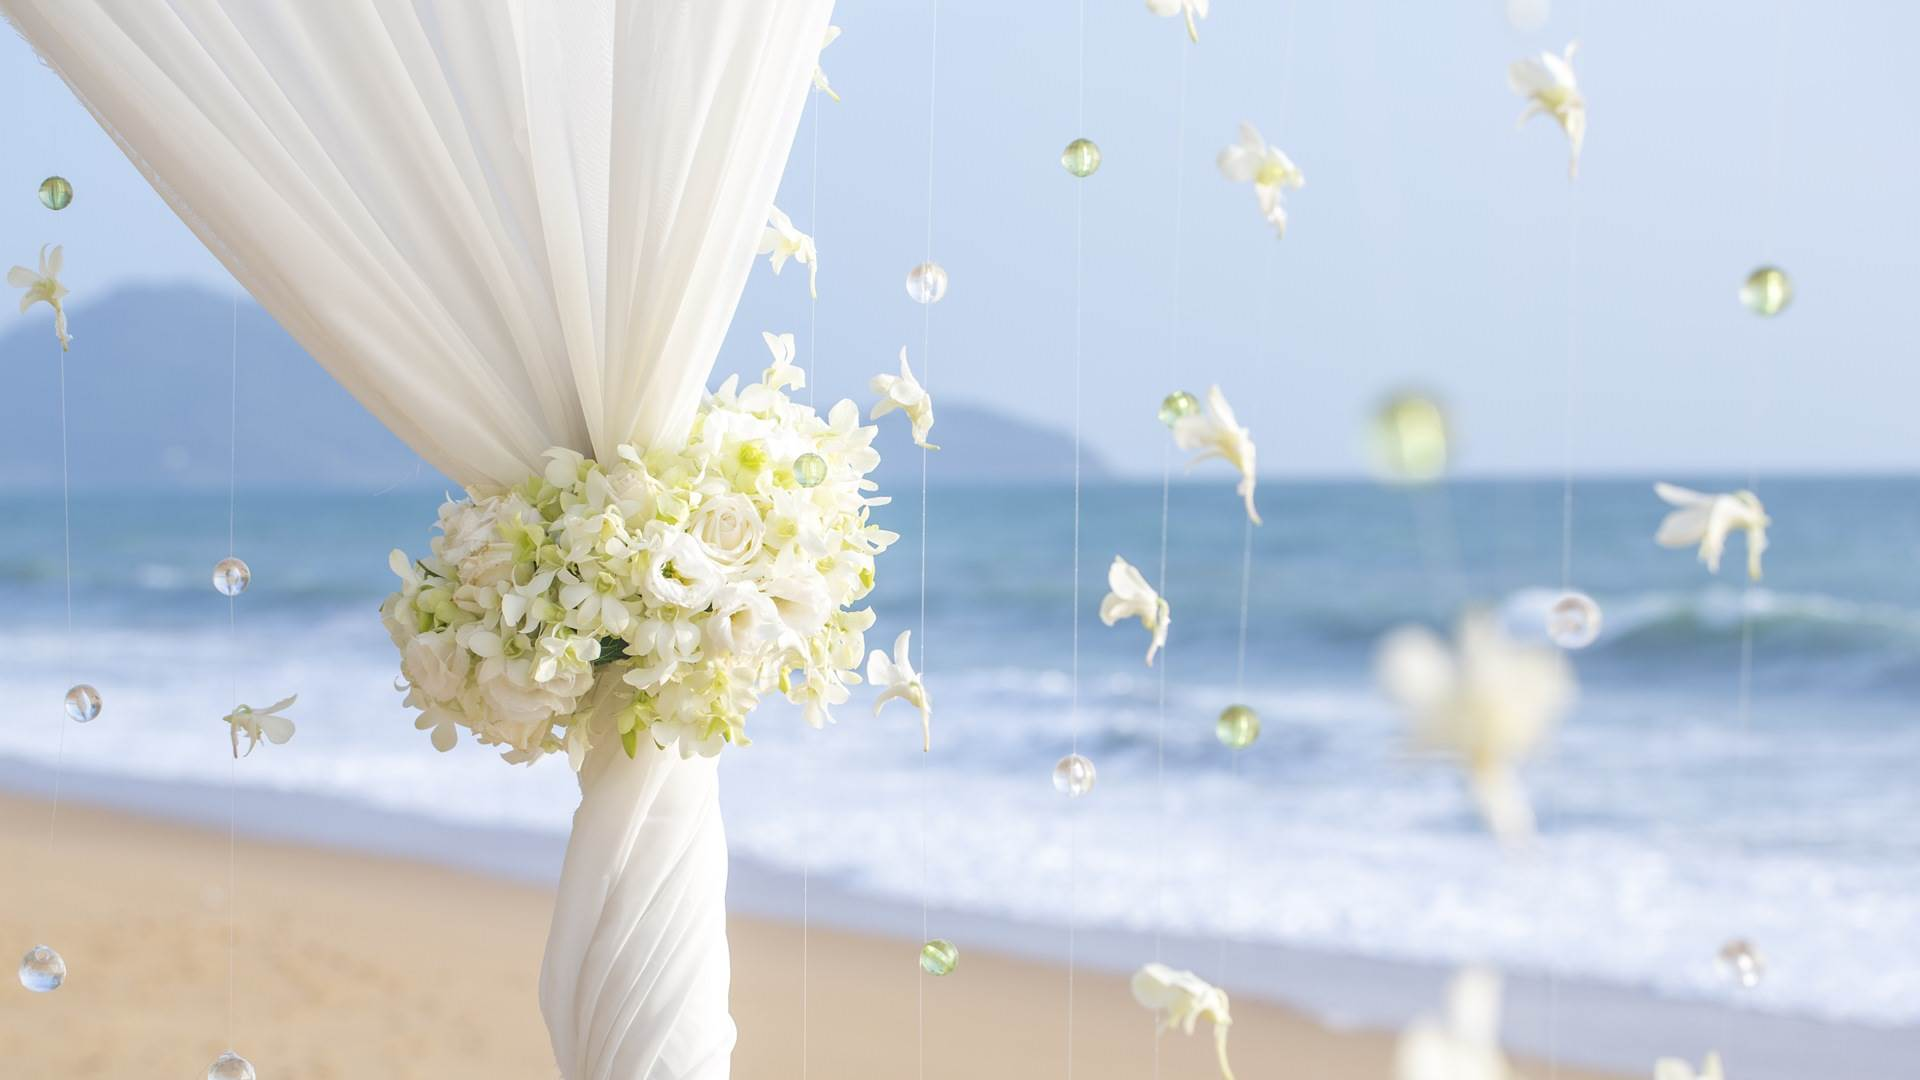 Love-and-Wedding-The-Pearl-Resort_compressed